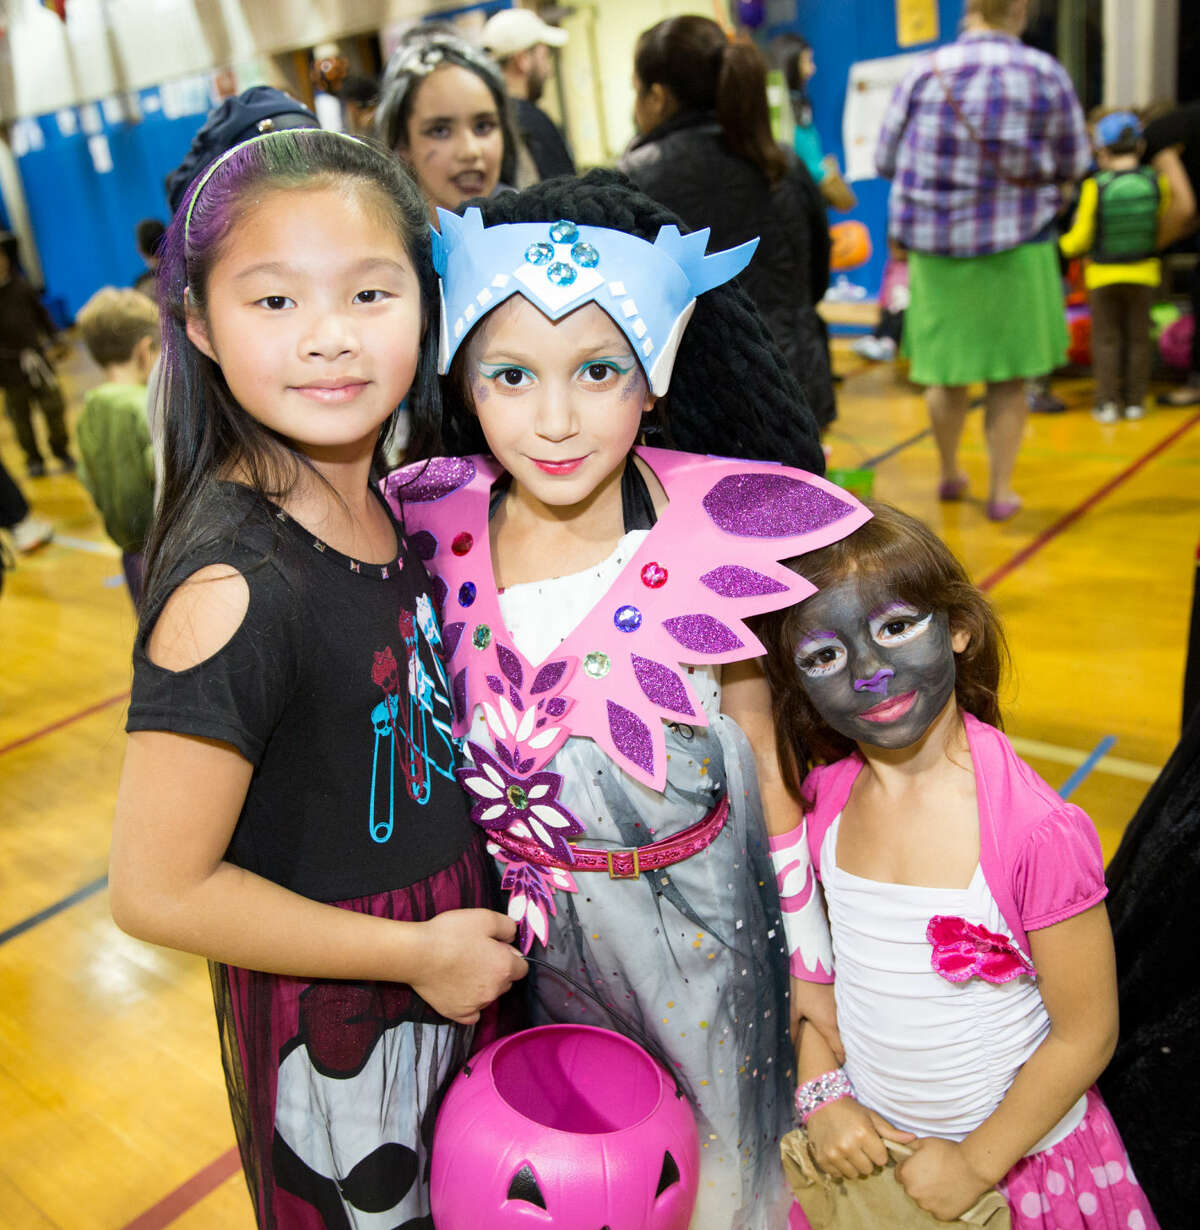 Hour photo/Chris Palermo Charlene Yang, Dasha Martin, and Zoya Martin show off their costumes at Silvermine Elementary's Halloween Spooktacular Thursday evening.